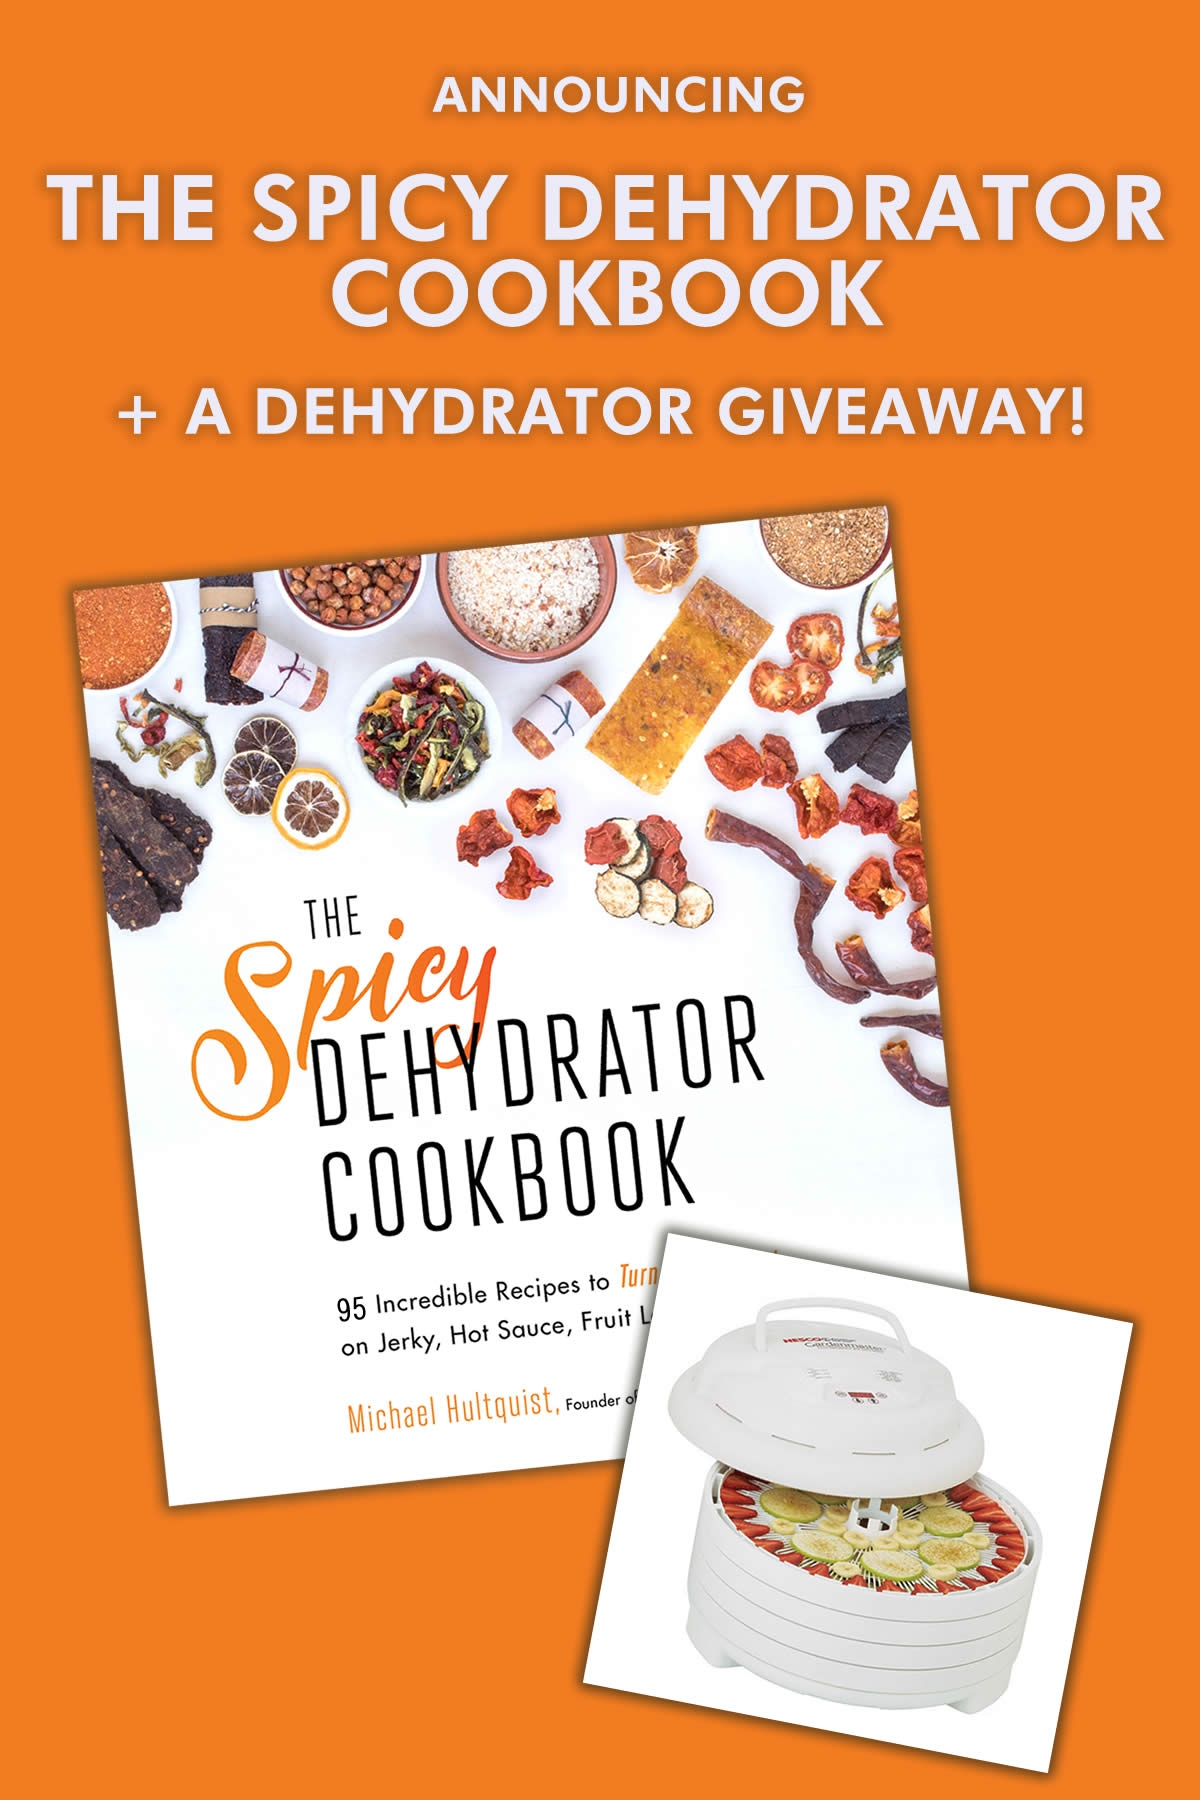 Announcing – The Spicy Dehydrator Cookbook + a Dehydrator Giveaway